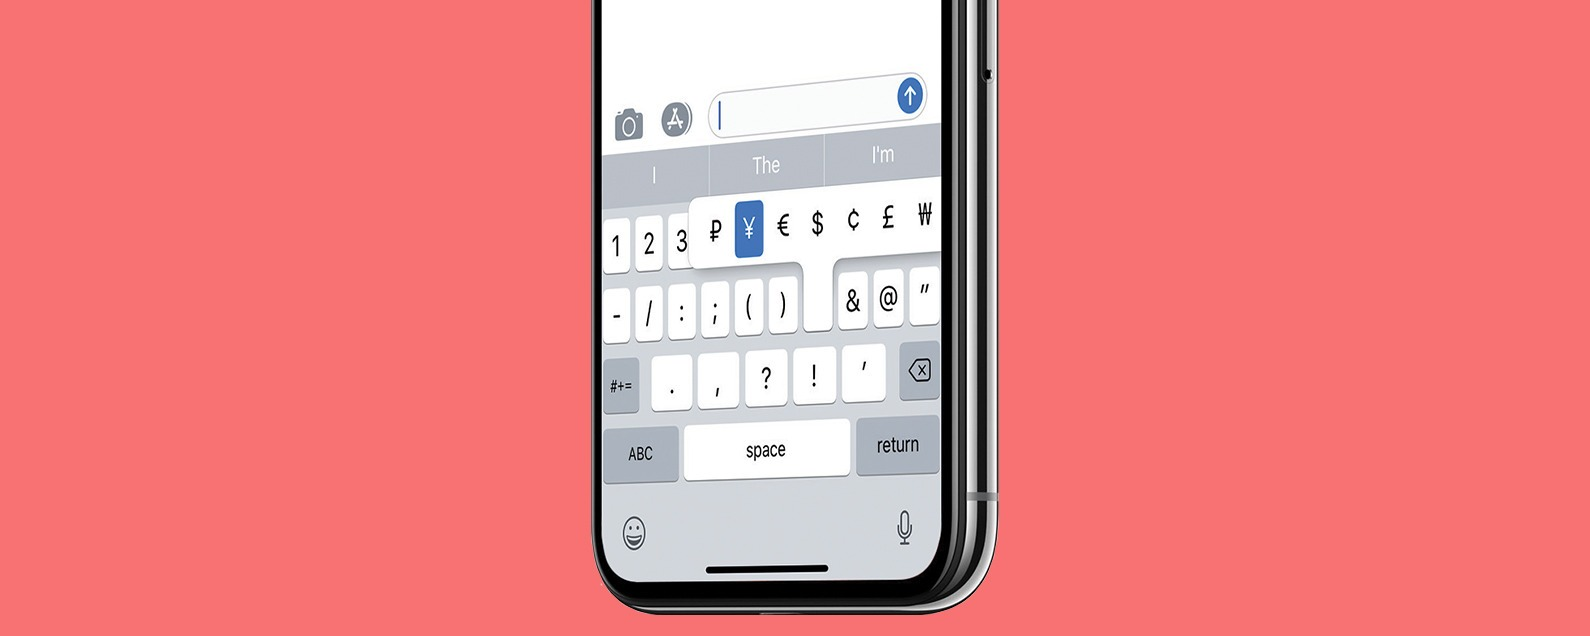 Currency Symbols: How to Type the Yen Symbol on Your iPhone